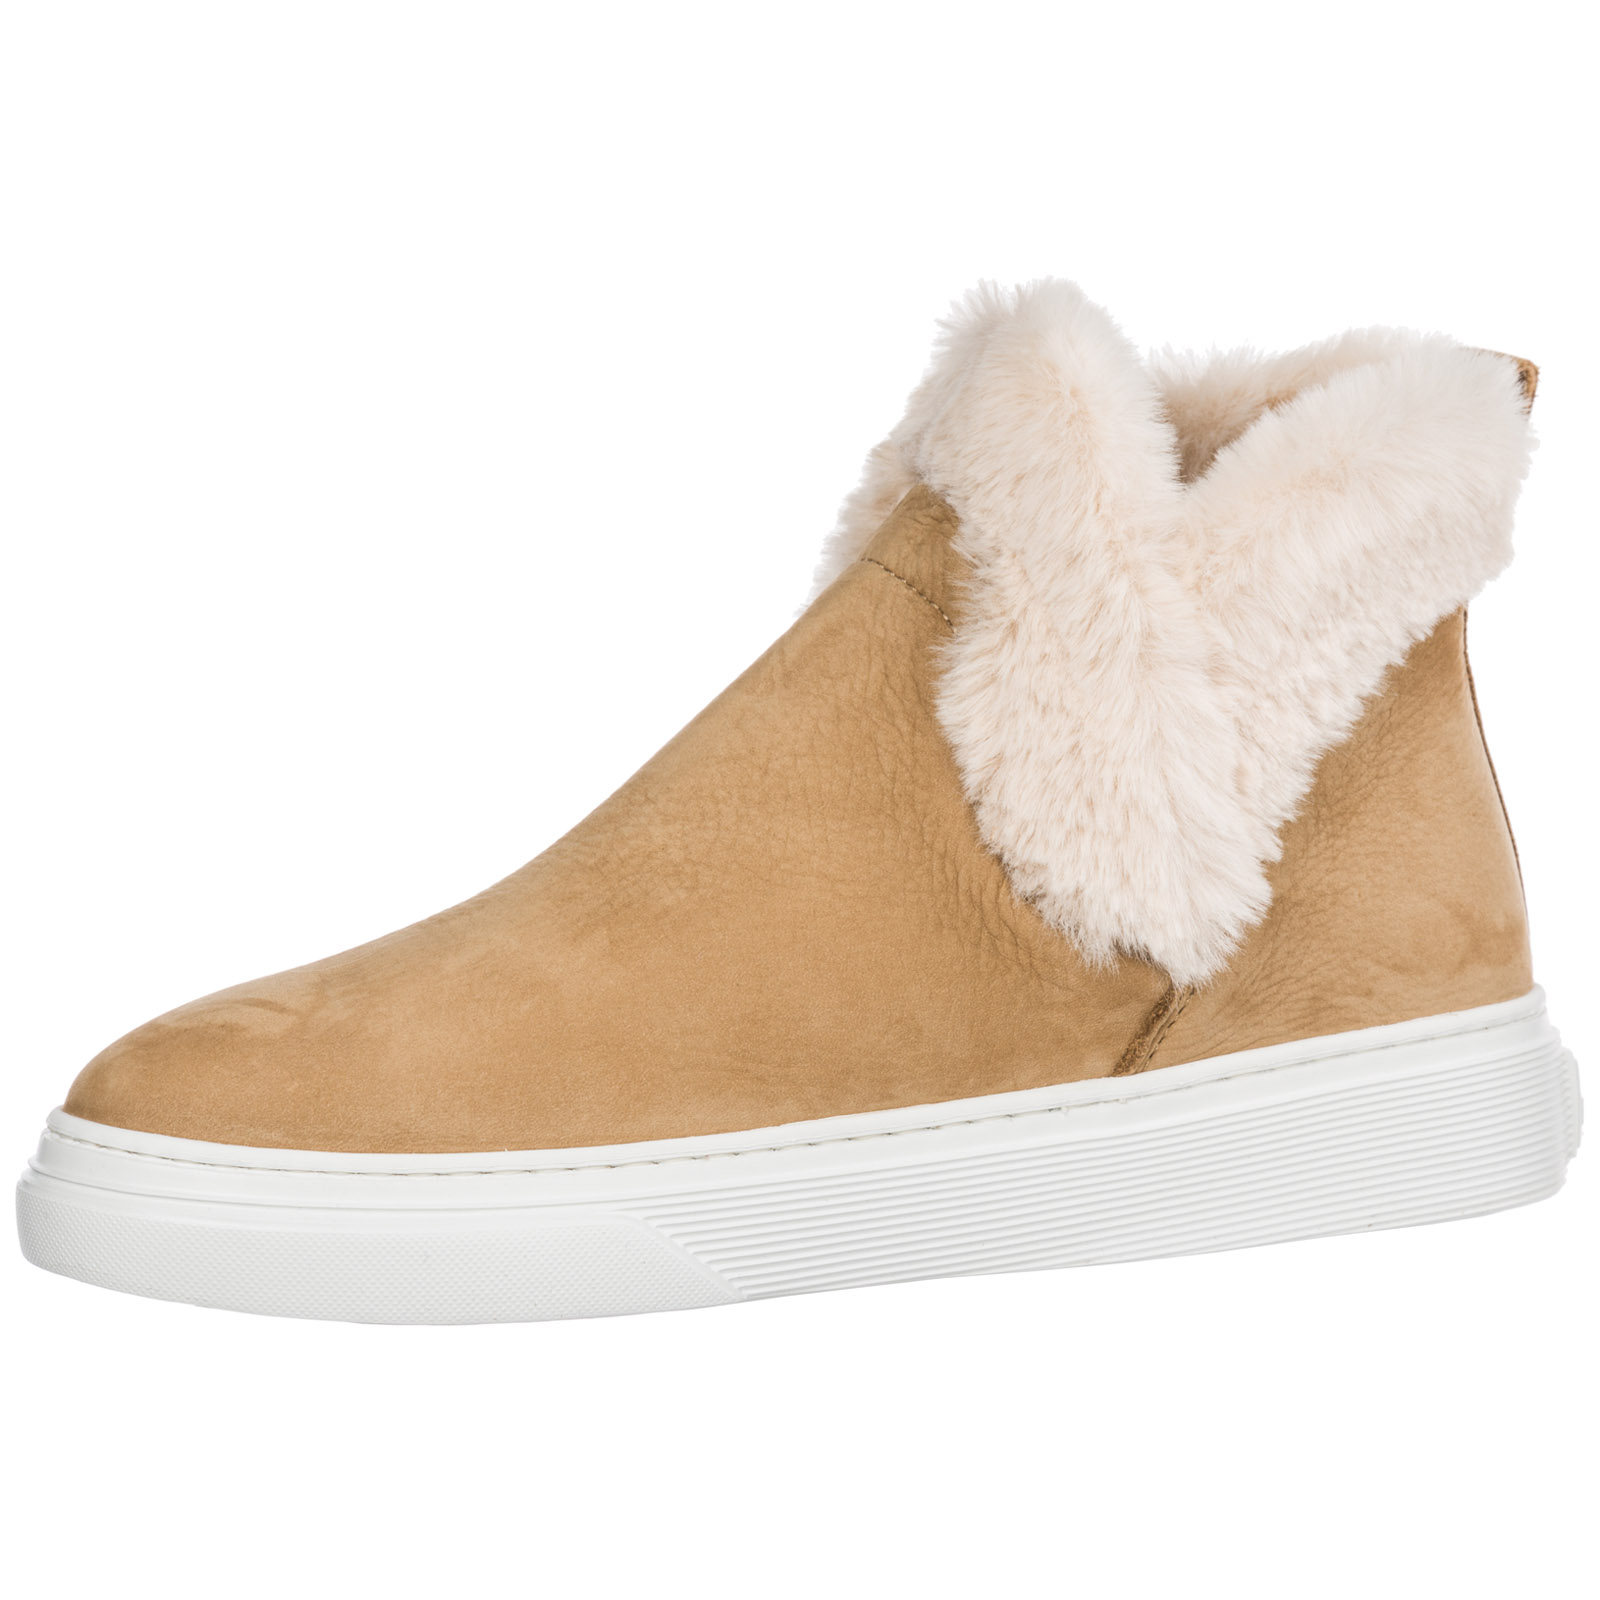 Women's suede ankle boots booties h365